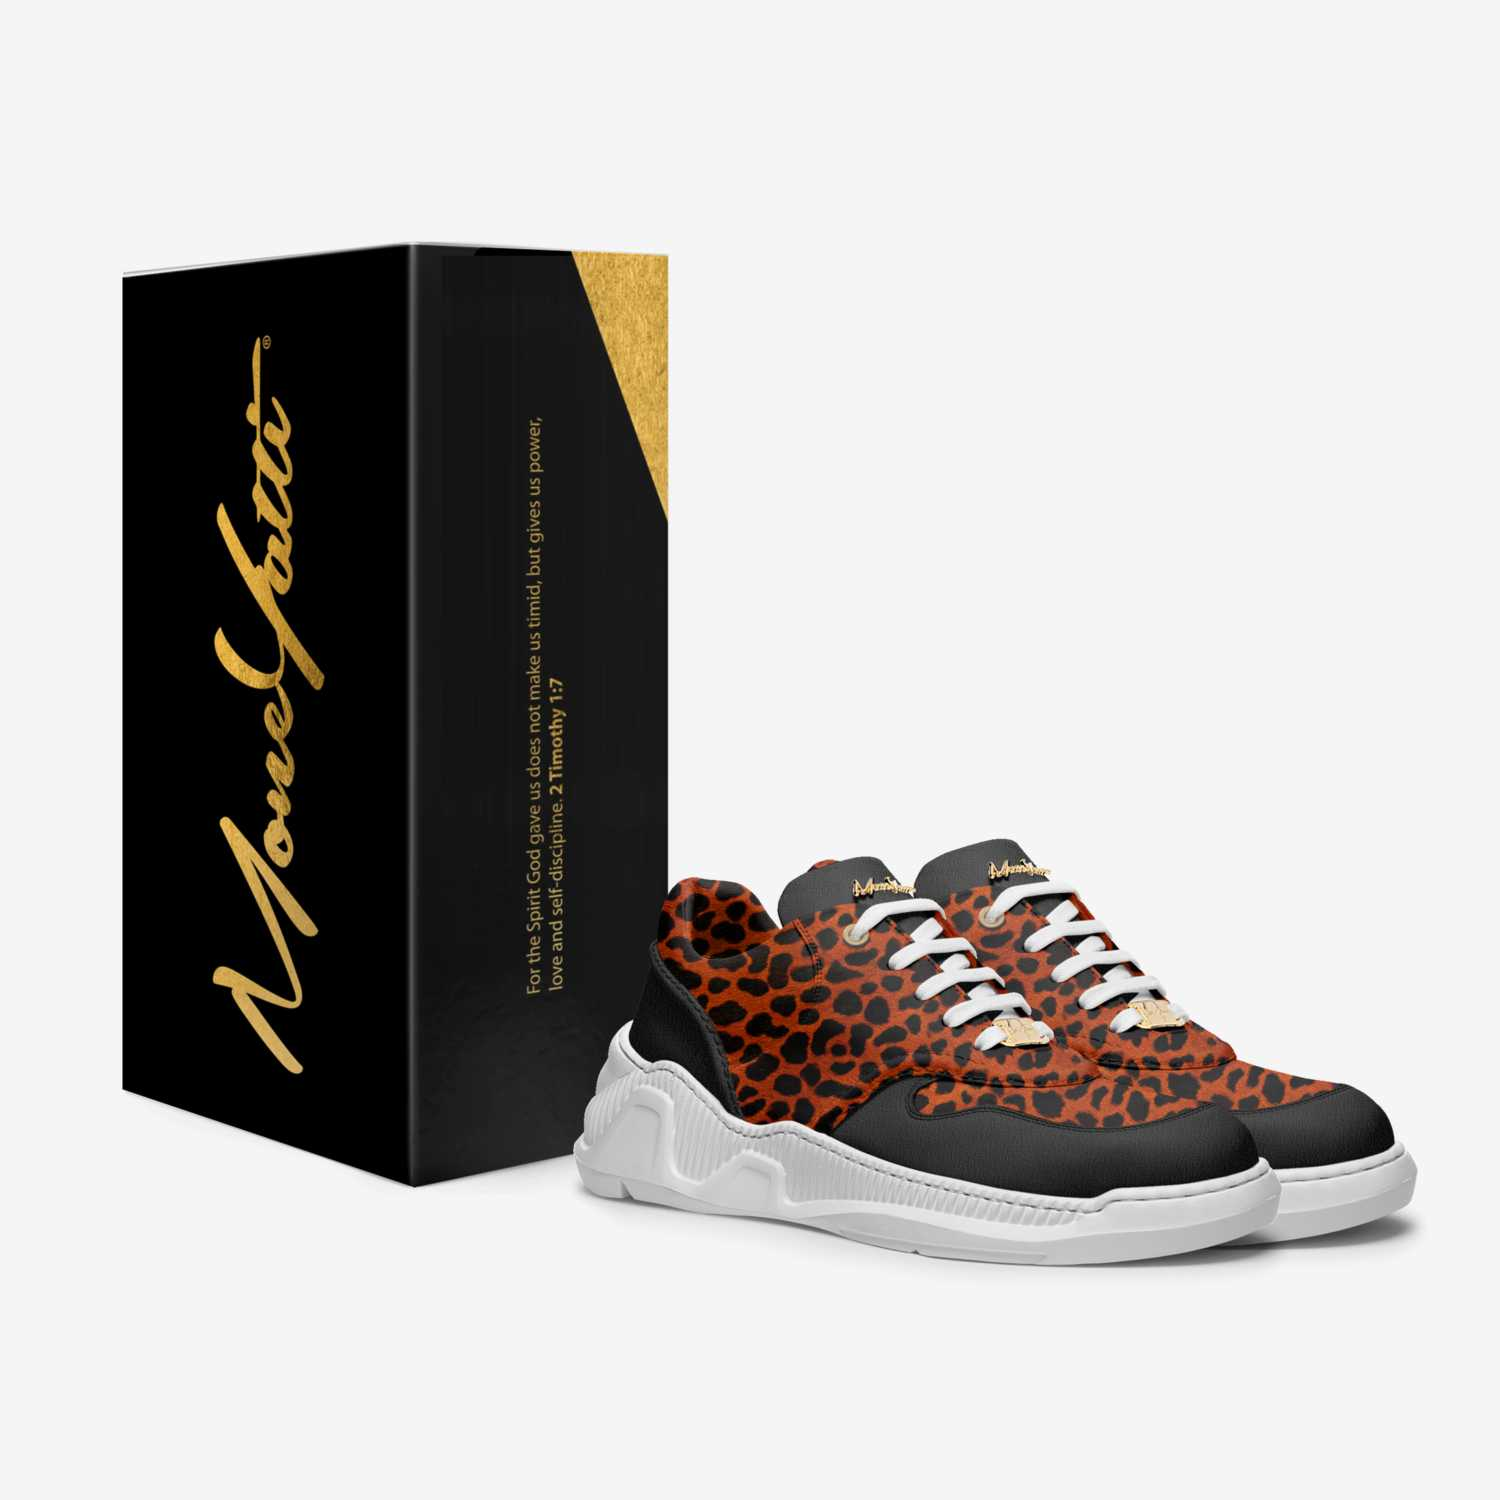 Moneyatti Miller60 custom made in Italy shoes by Moneyatti Brand | Box view